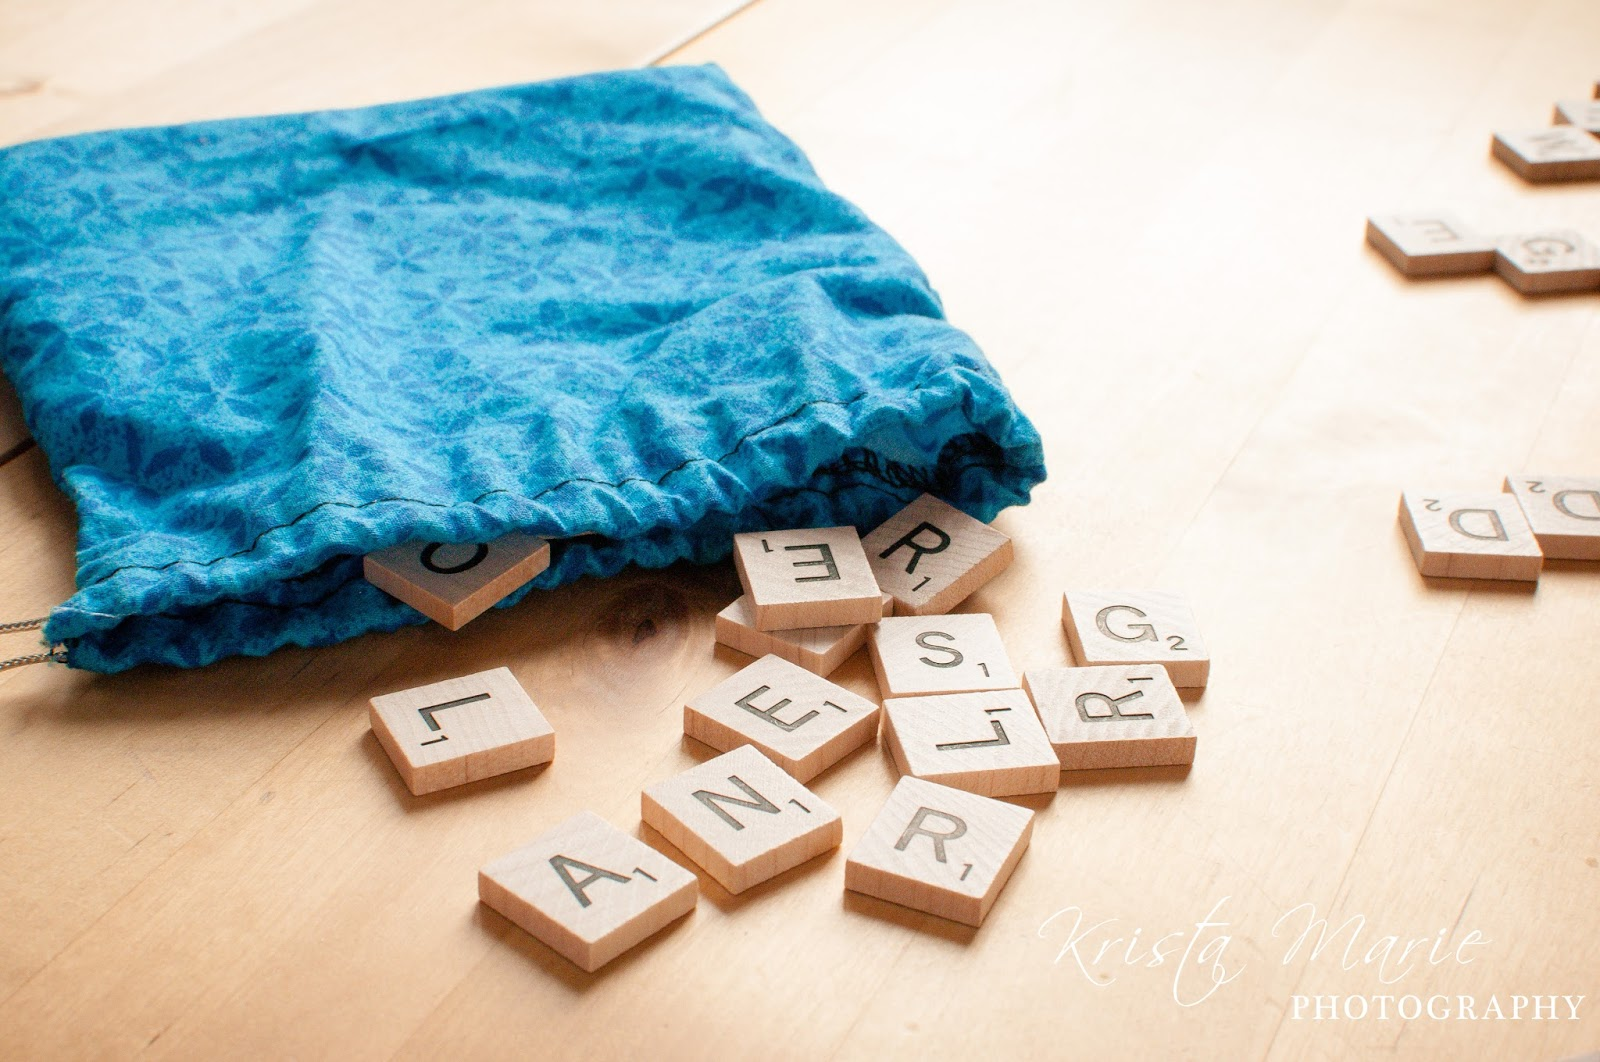 Kristas Random Thoughts Scrabble Sight Word Spelling For